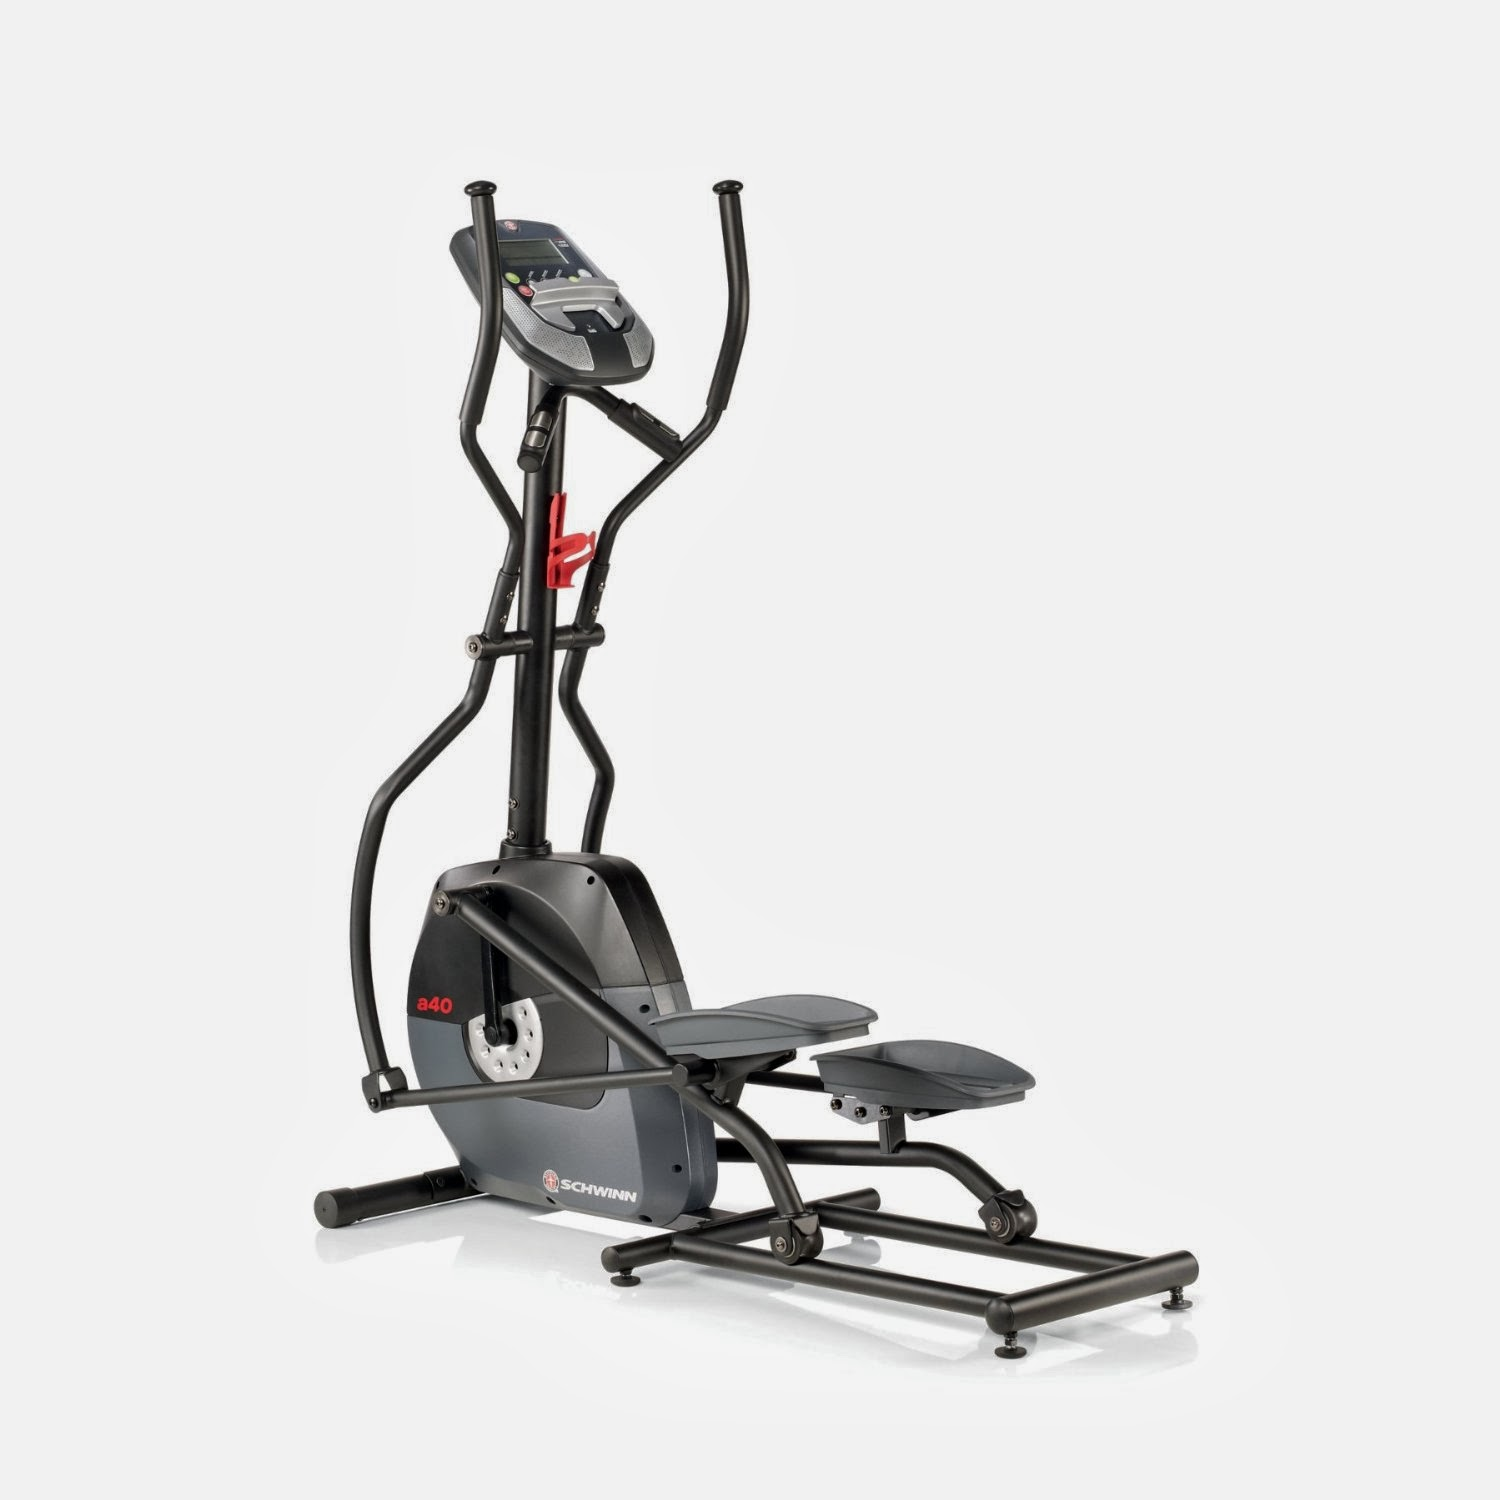 Schwinn A40 Elliptical Trainer Machine, picture, review features & specifications